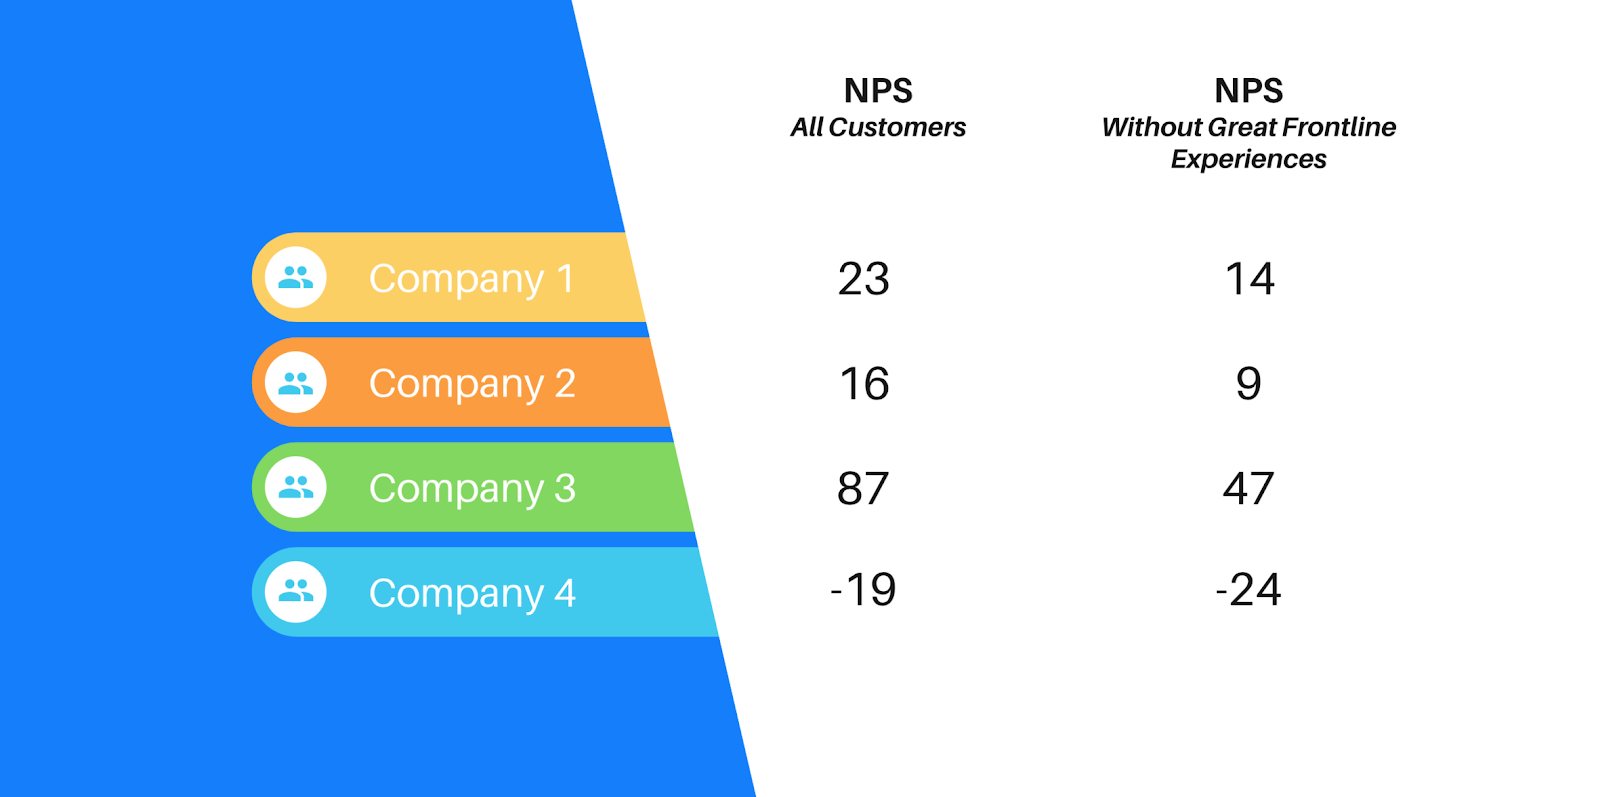 The impact of great frontline experience on NPS